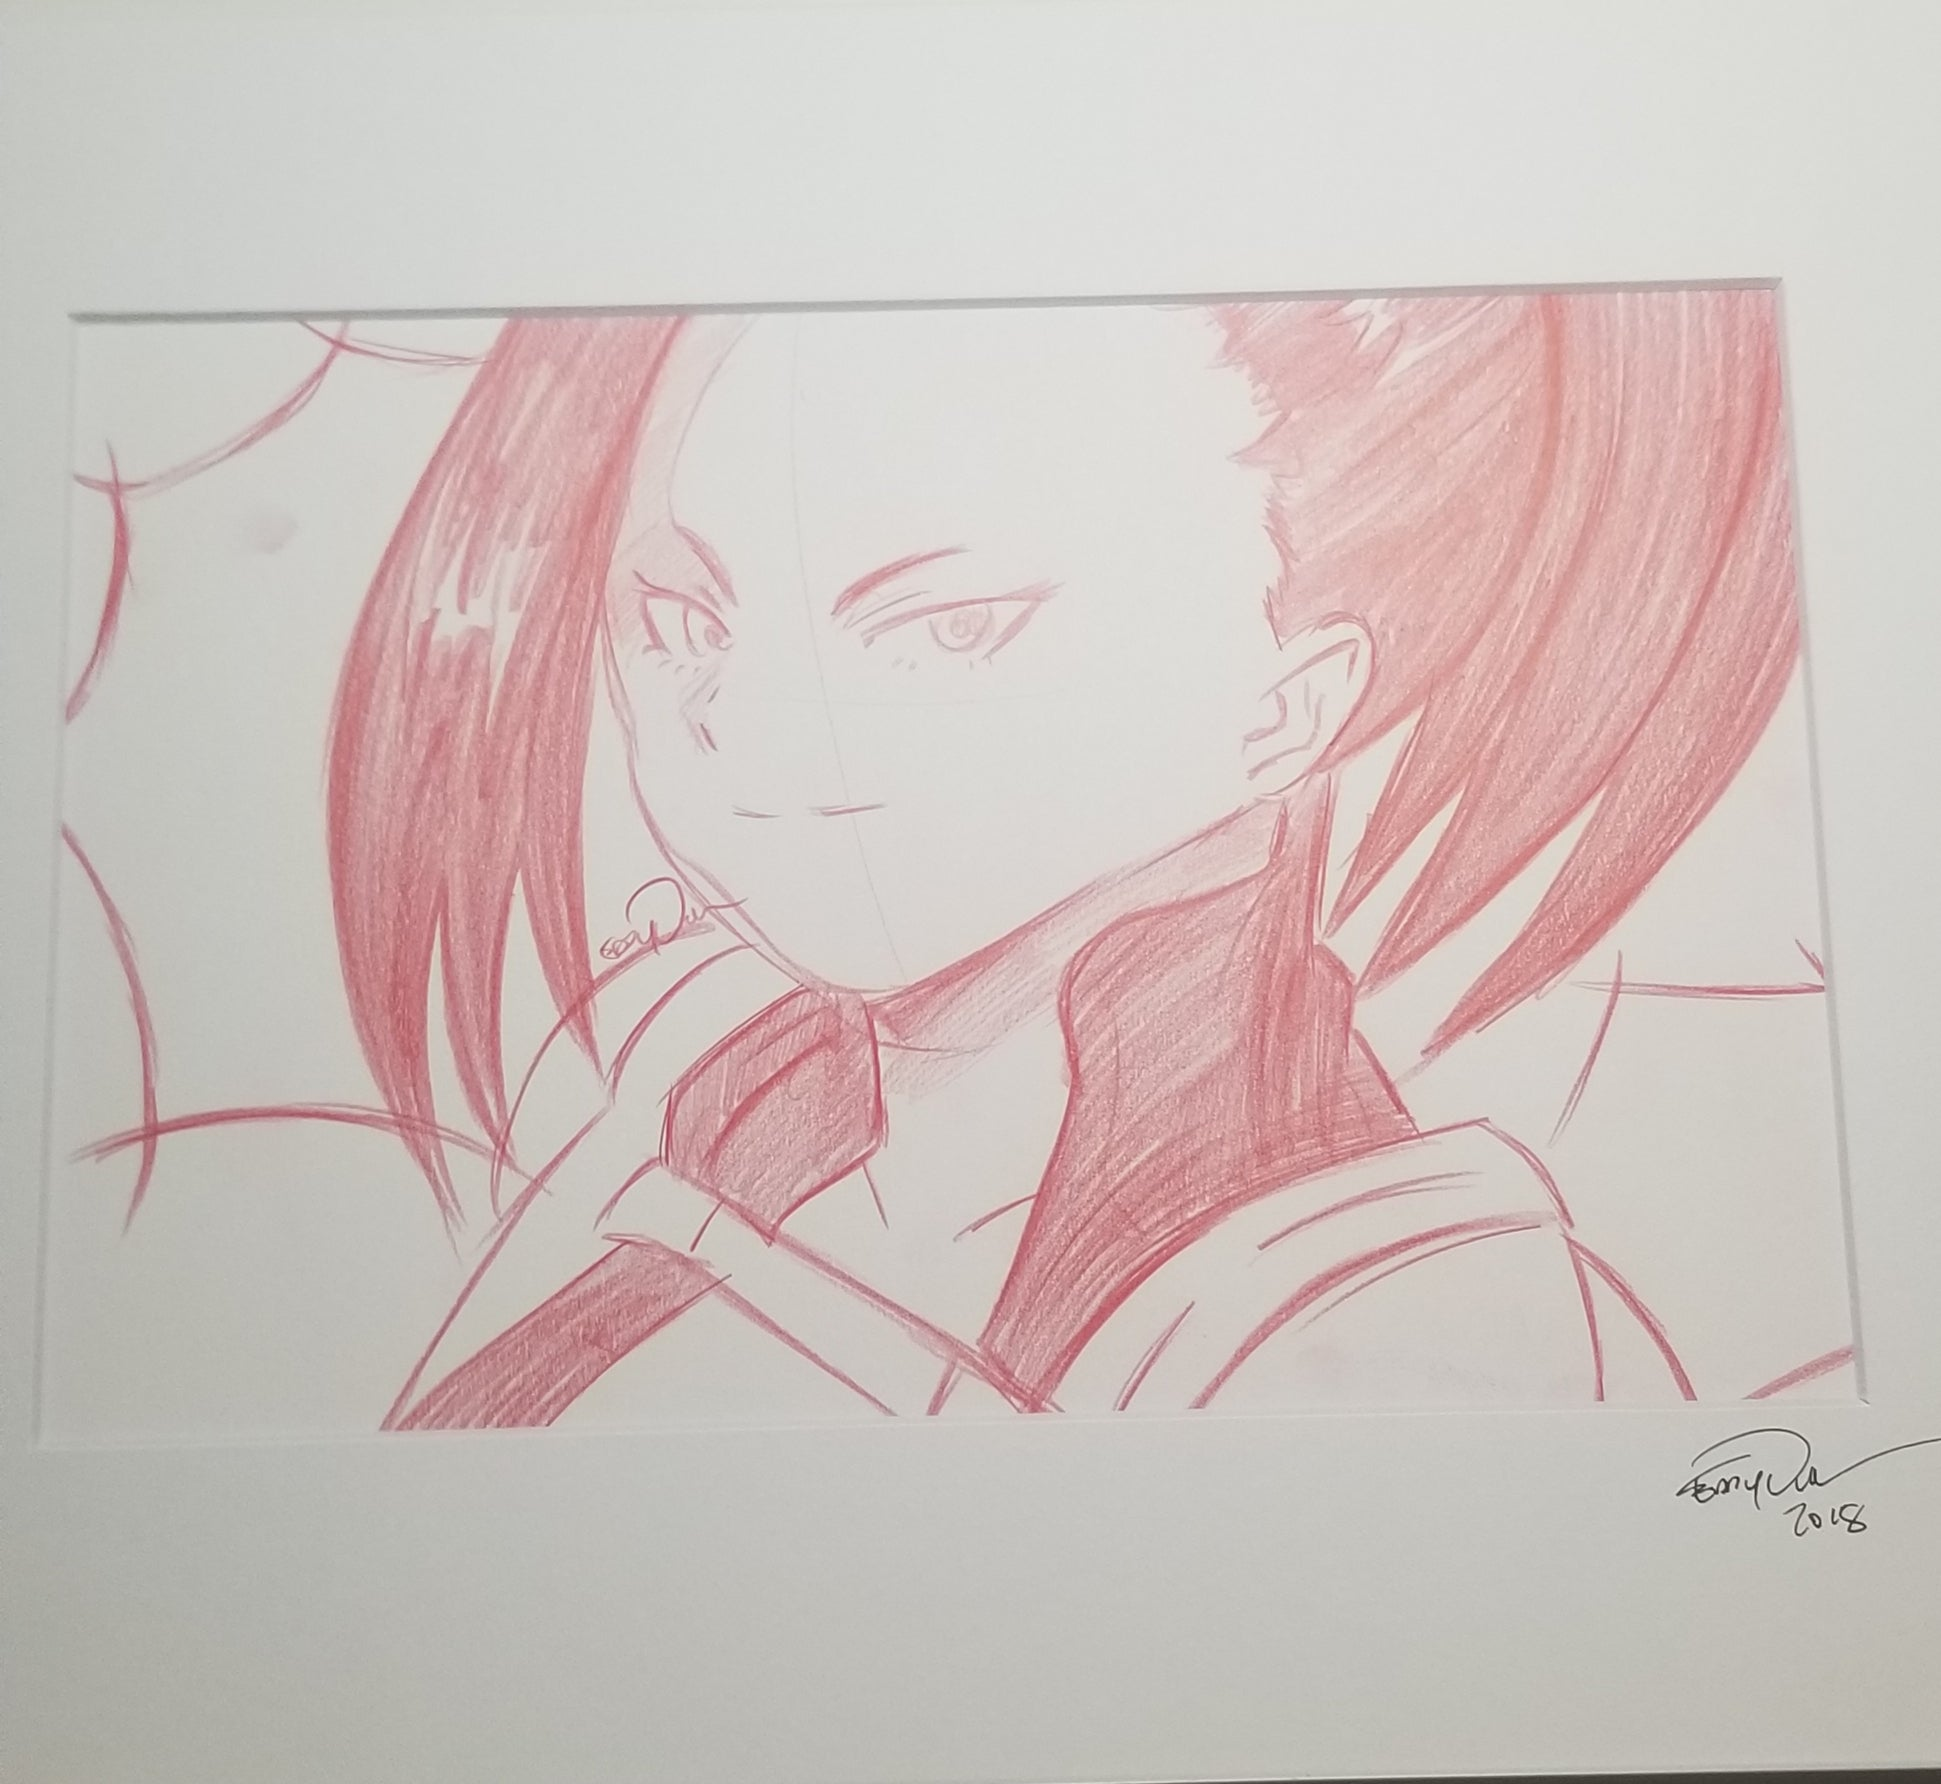 Original Art (Yaoyurozu Sketch)